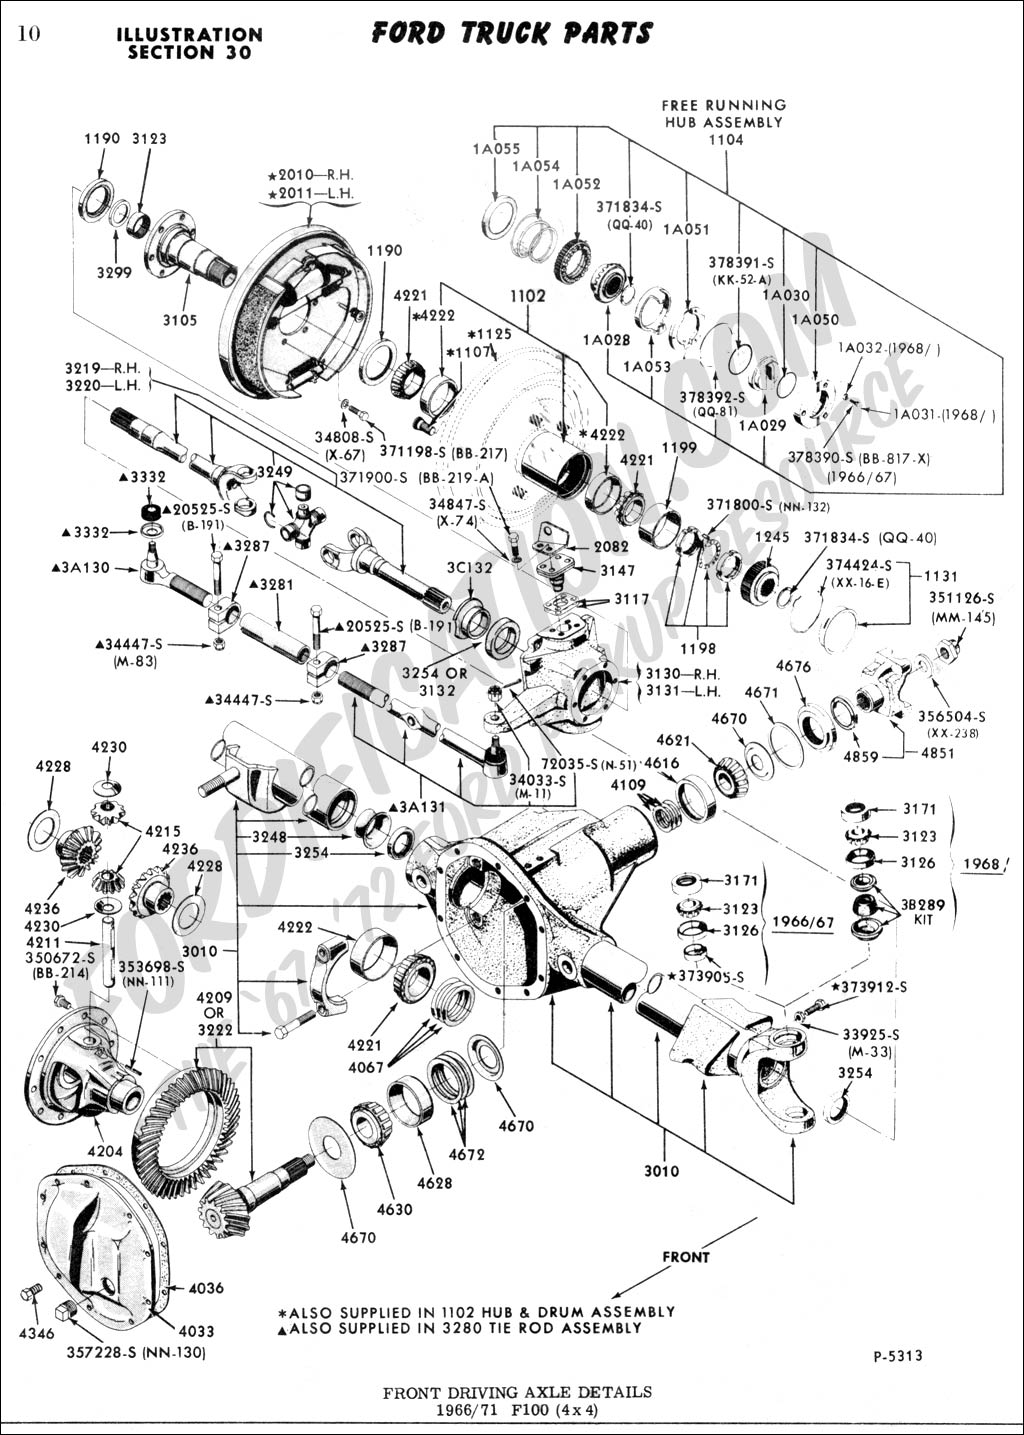 2005 Hyundai Sonata Exhaust System Diagram furthermore Trunk Latch Diagram also Chevy Malibu Wiring Diagrams as well Where Is The Oil Pressure Sensor On A 2008 additionally 1967 Corvette Steering Column Diagram. on catalog3